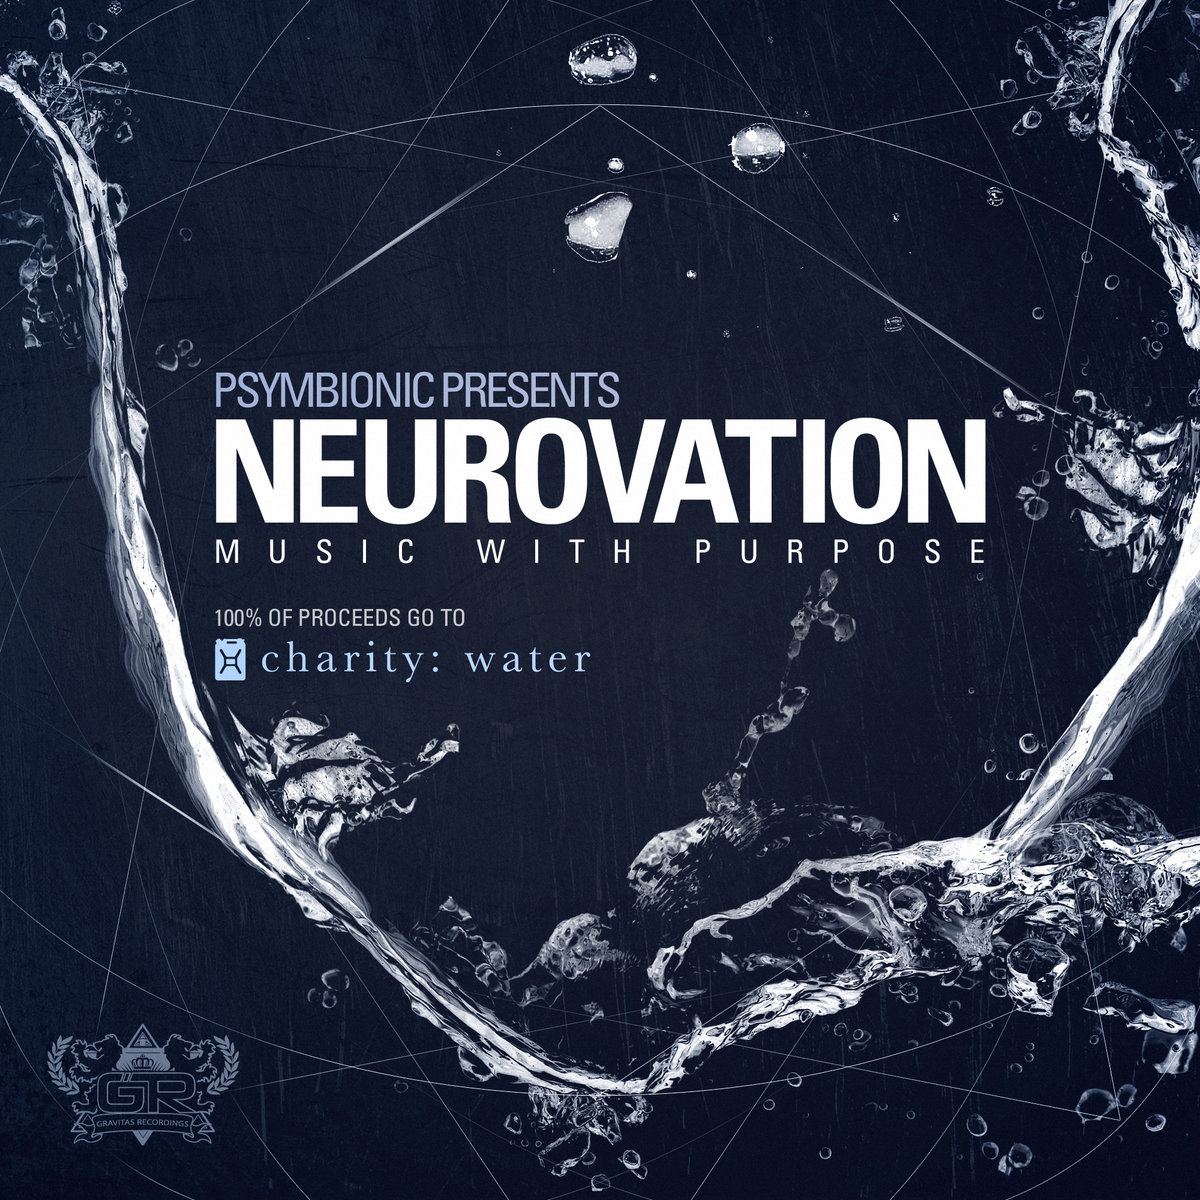 Various Artists - Psymbionic Presents: Neurovation @ 'Psymbionic Presents: Neurovation' album (cryptex, glitch hop)